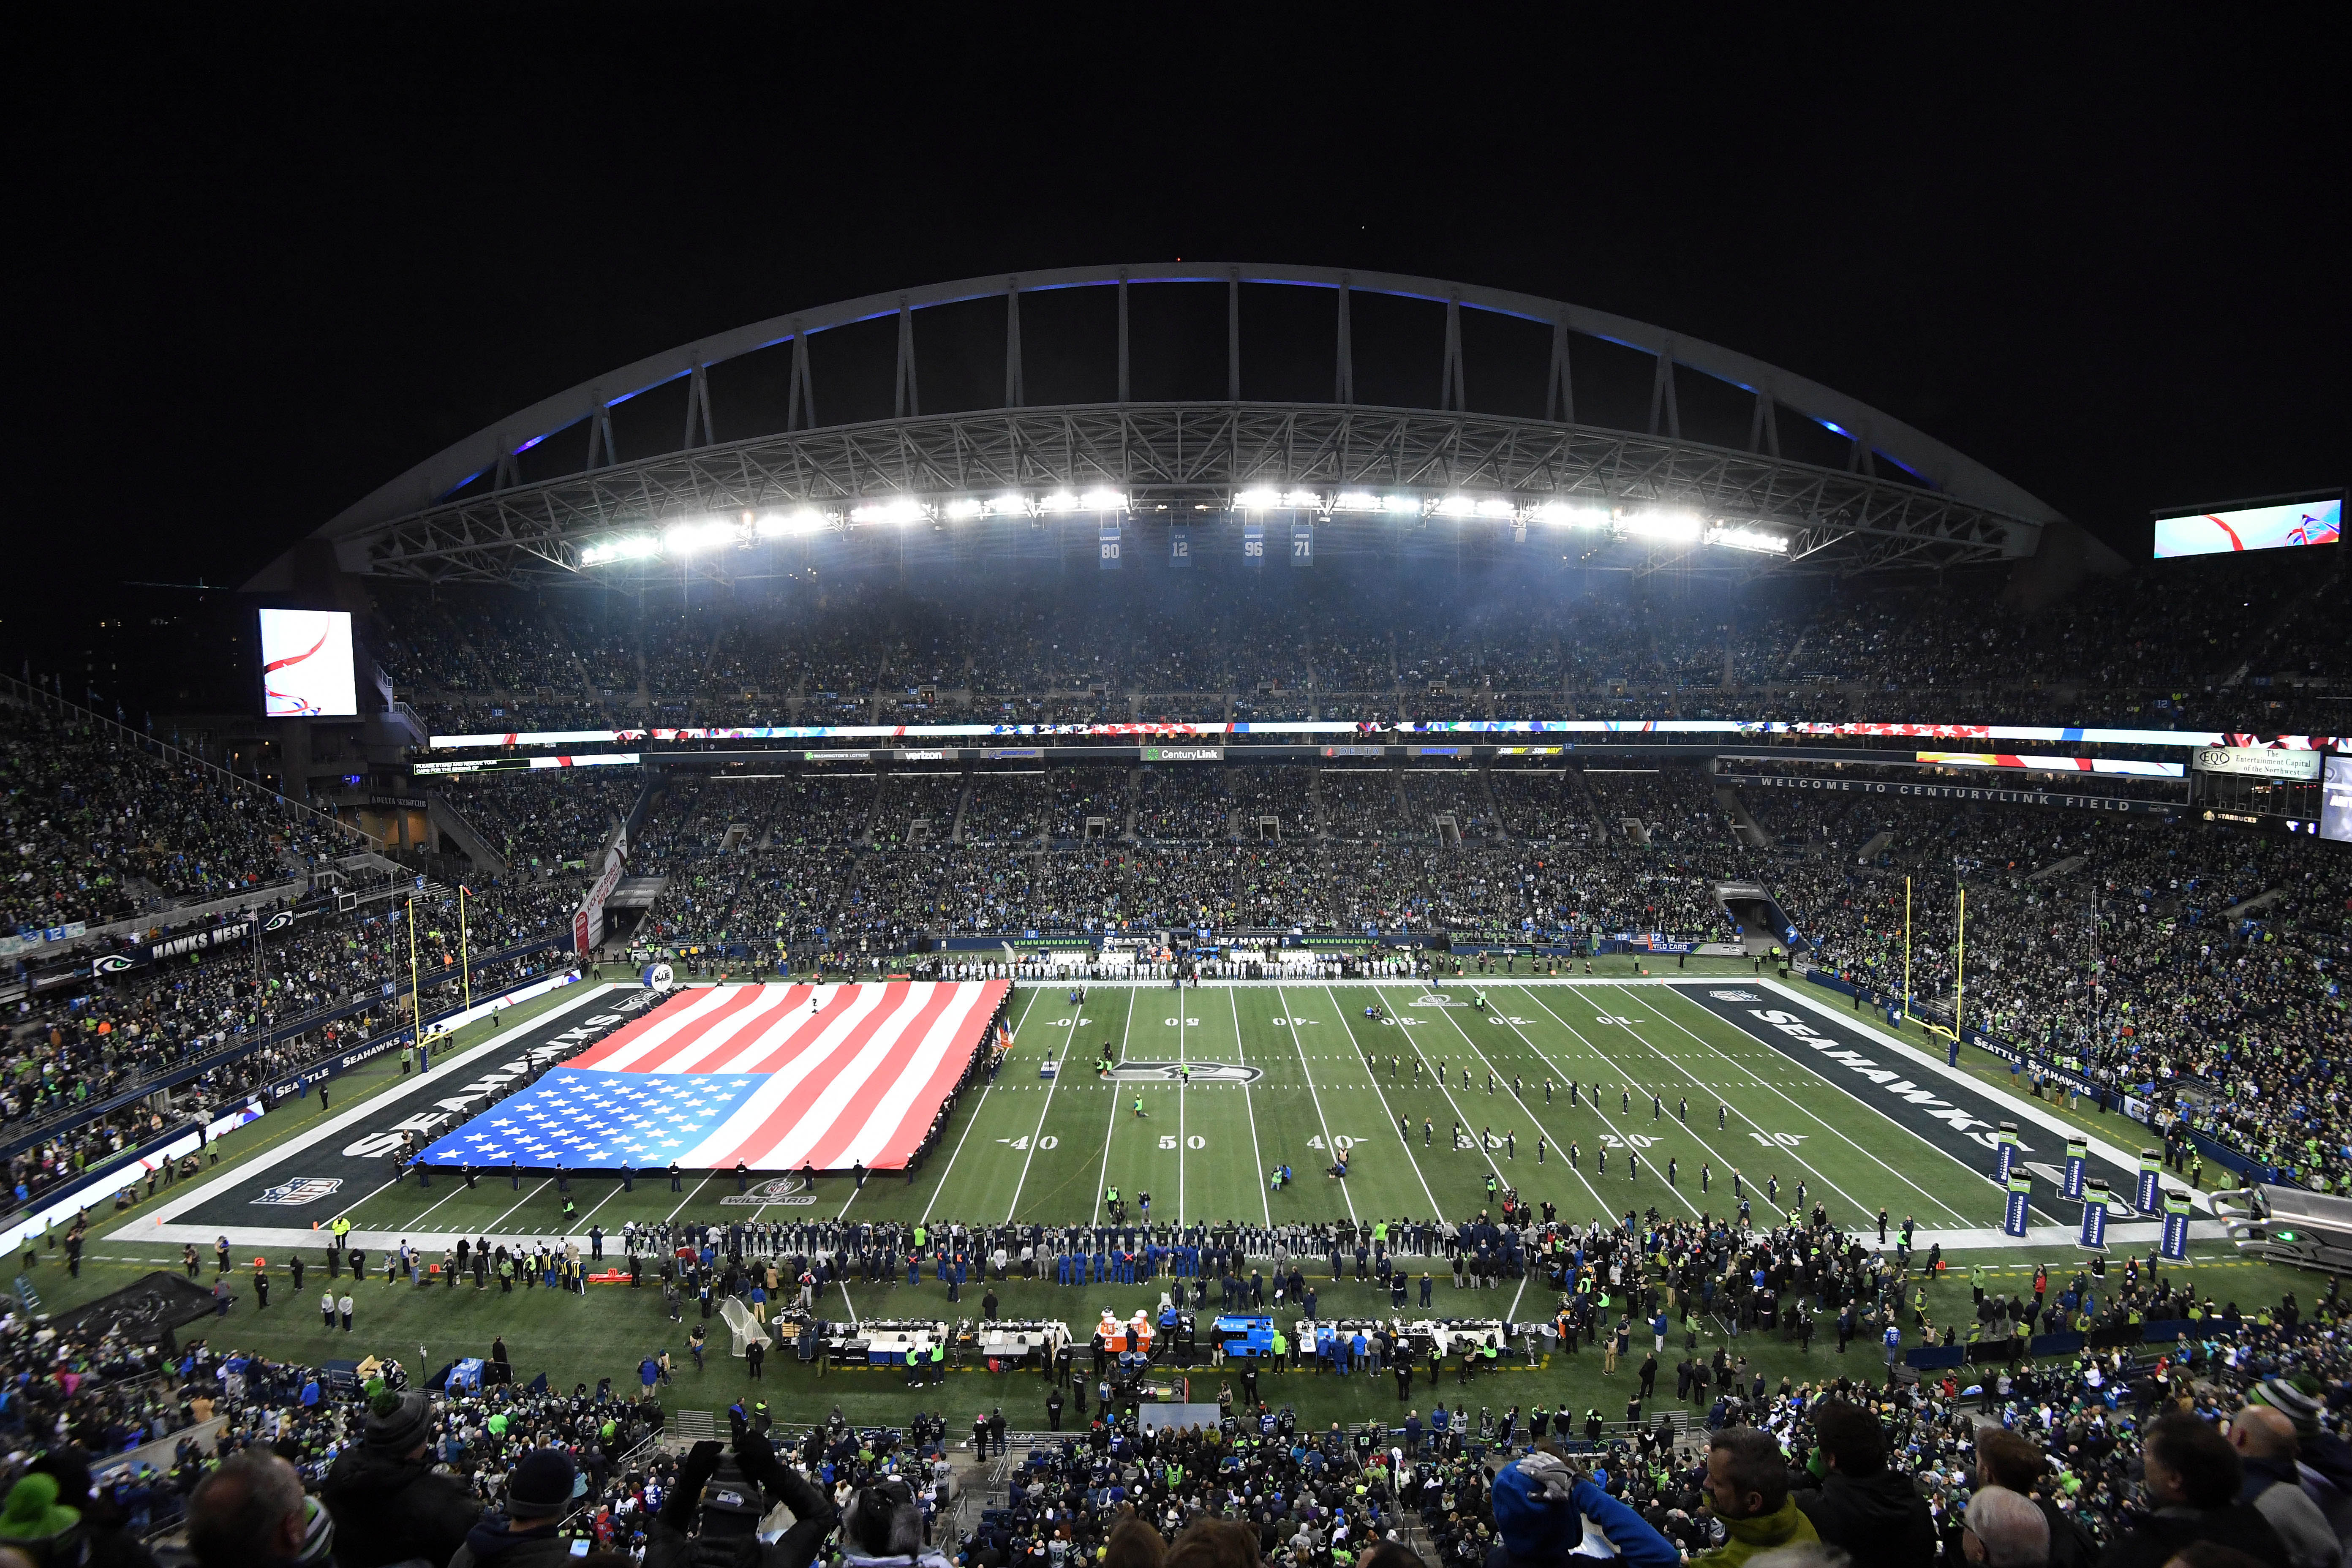 9795126-nfl-nfc-wild-card-detroit-lions-at-seattle-seahawks